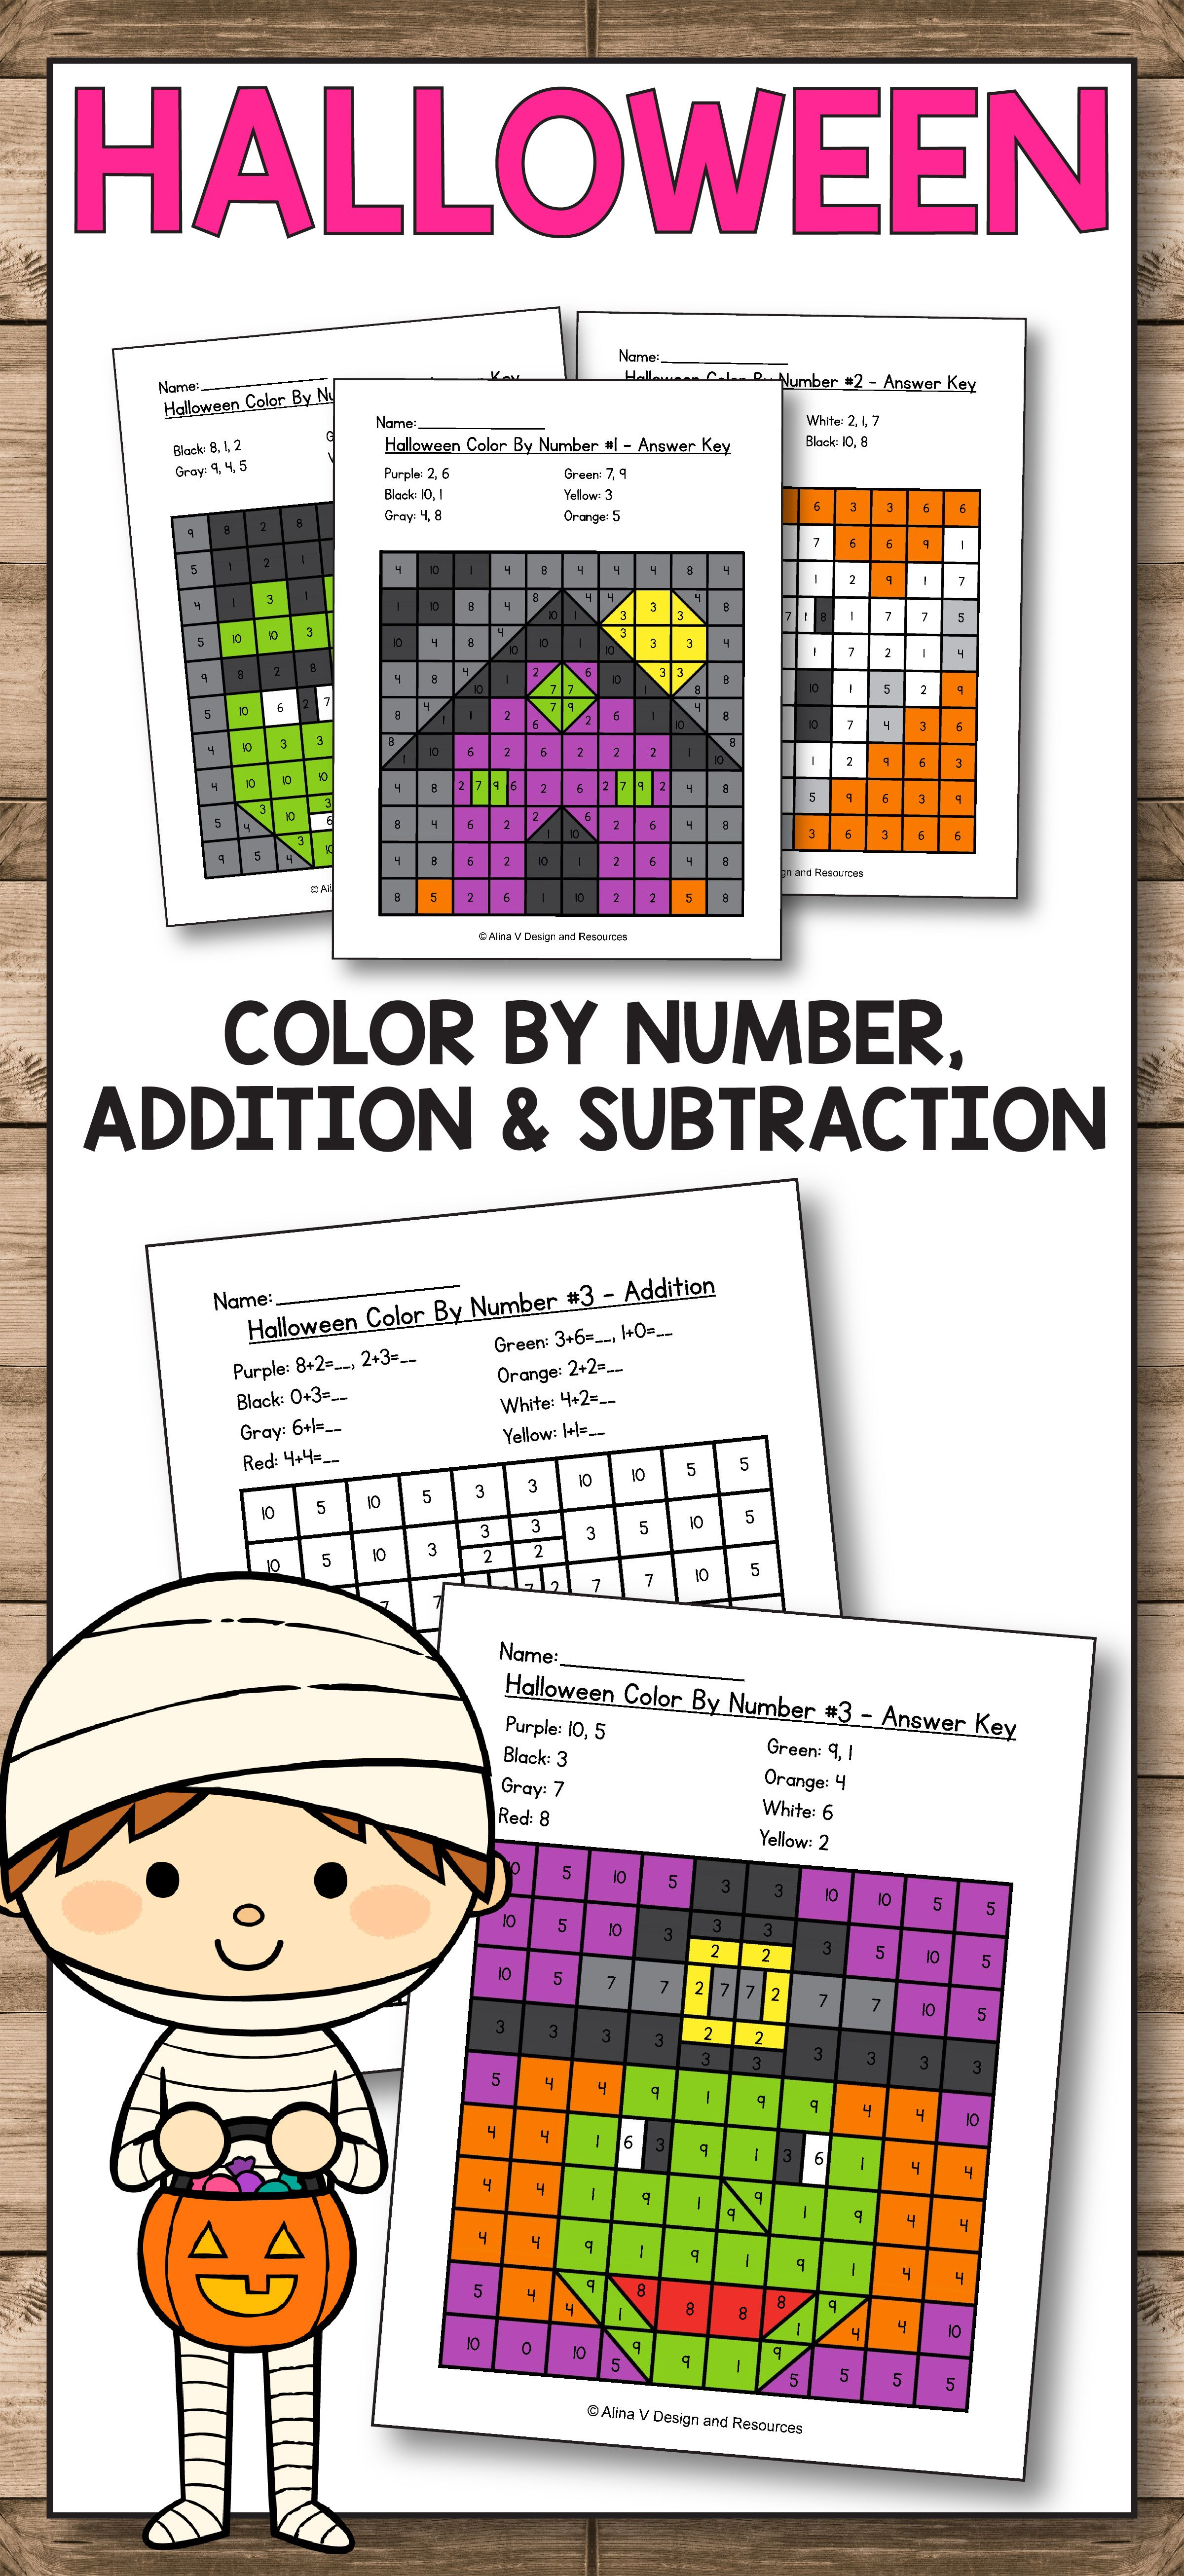 Halloween Color By Number - Halloween Math Worksheets   Halloween math  worksheets [ 5223 x 2400 Pixel ]